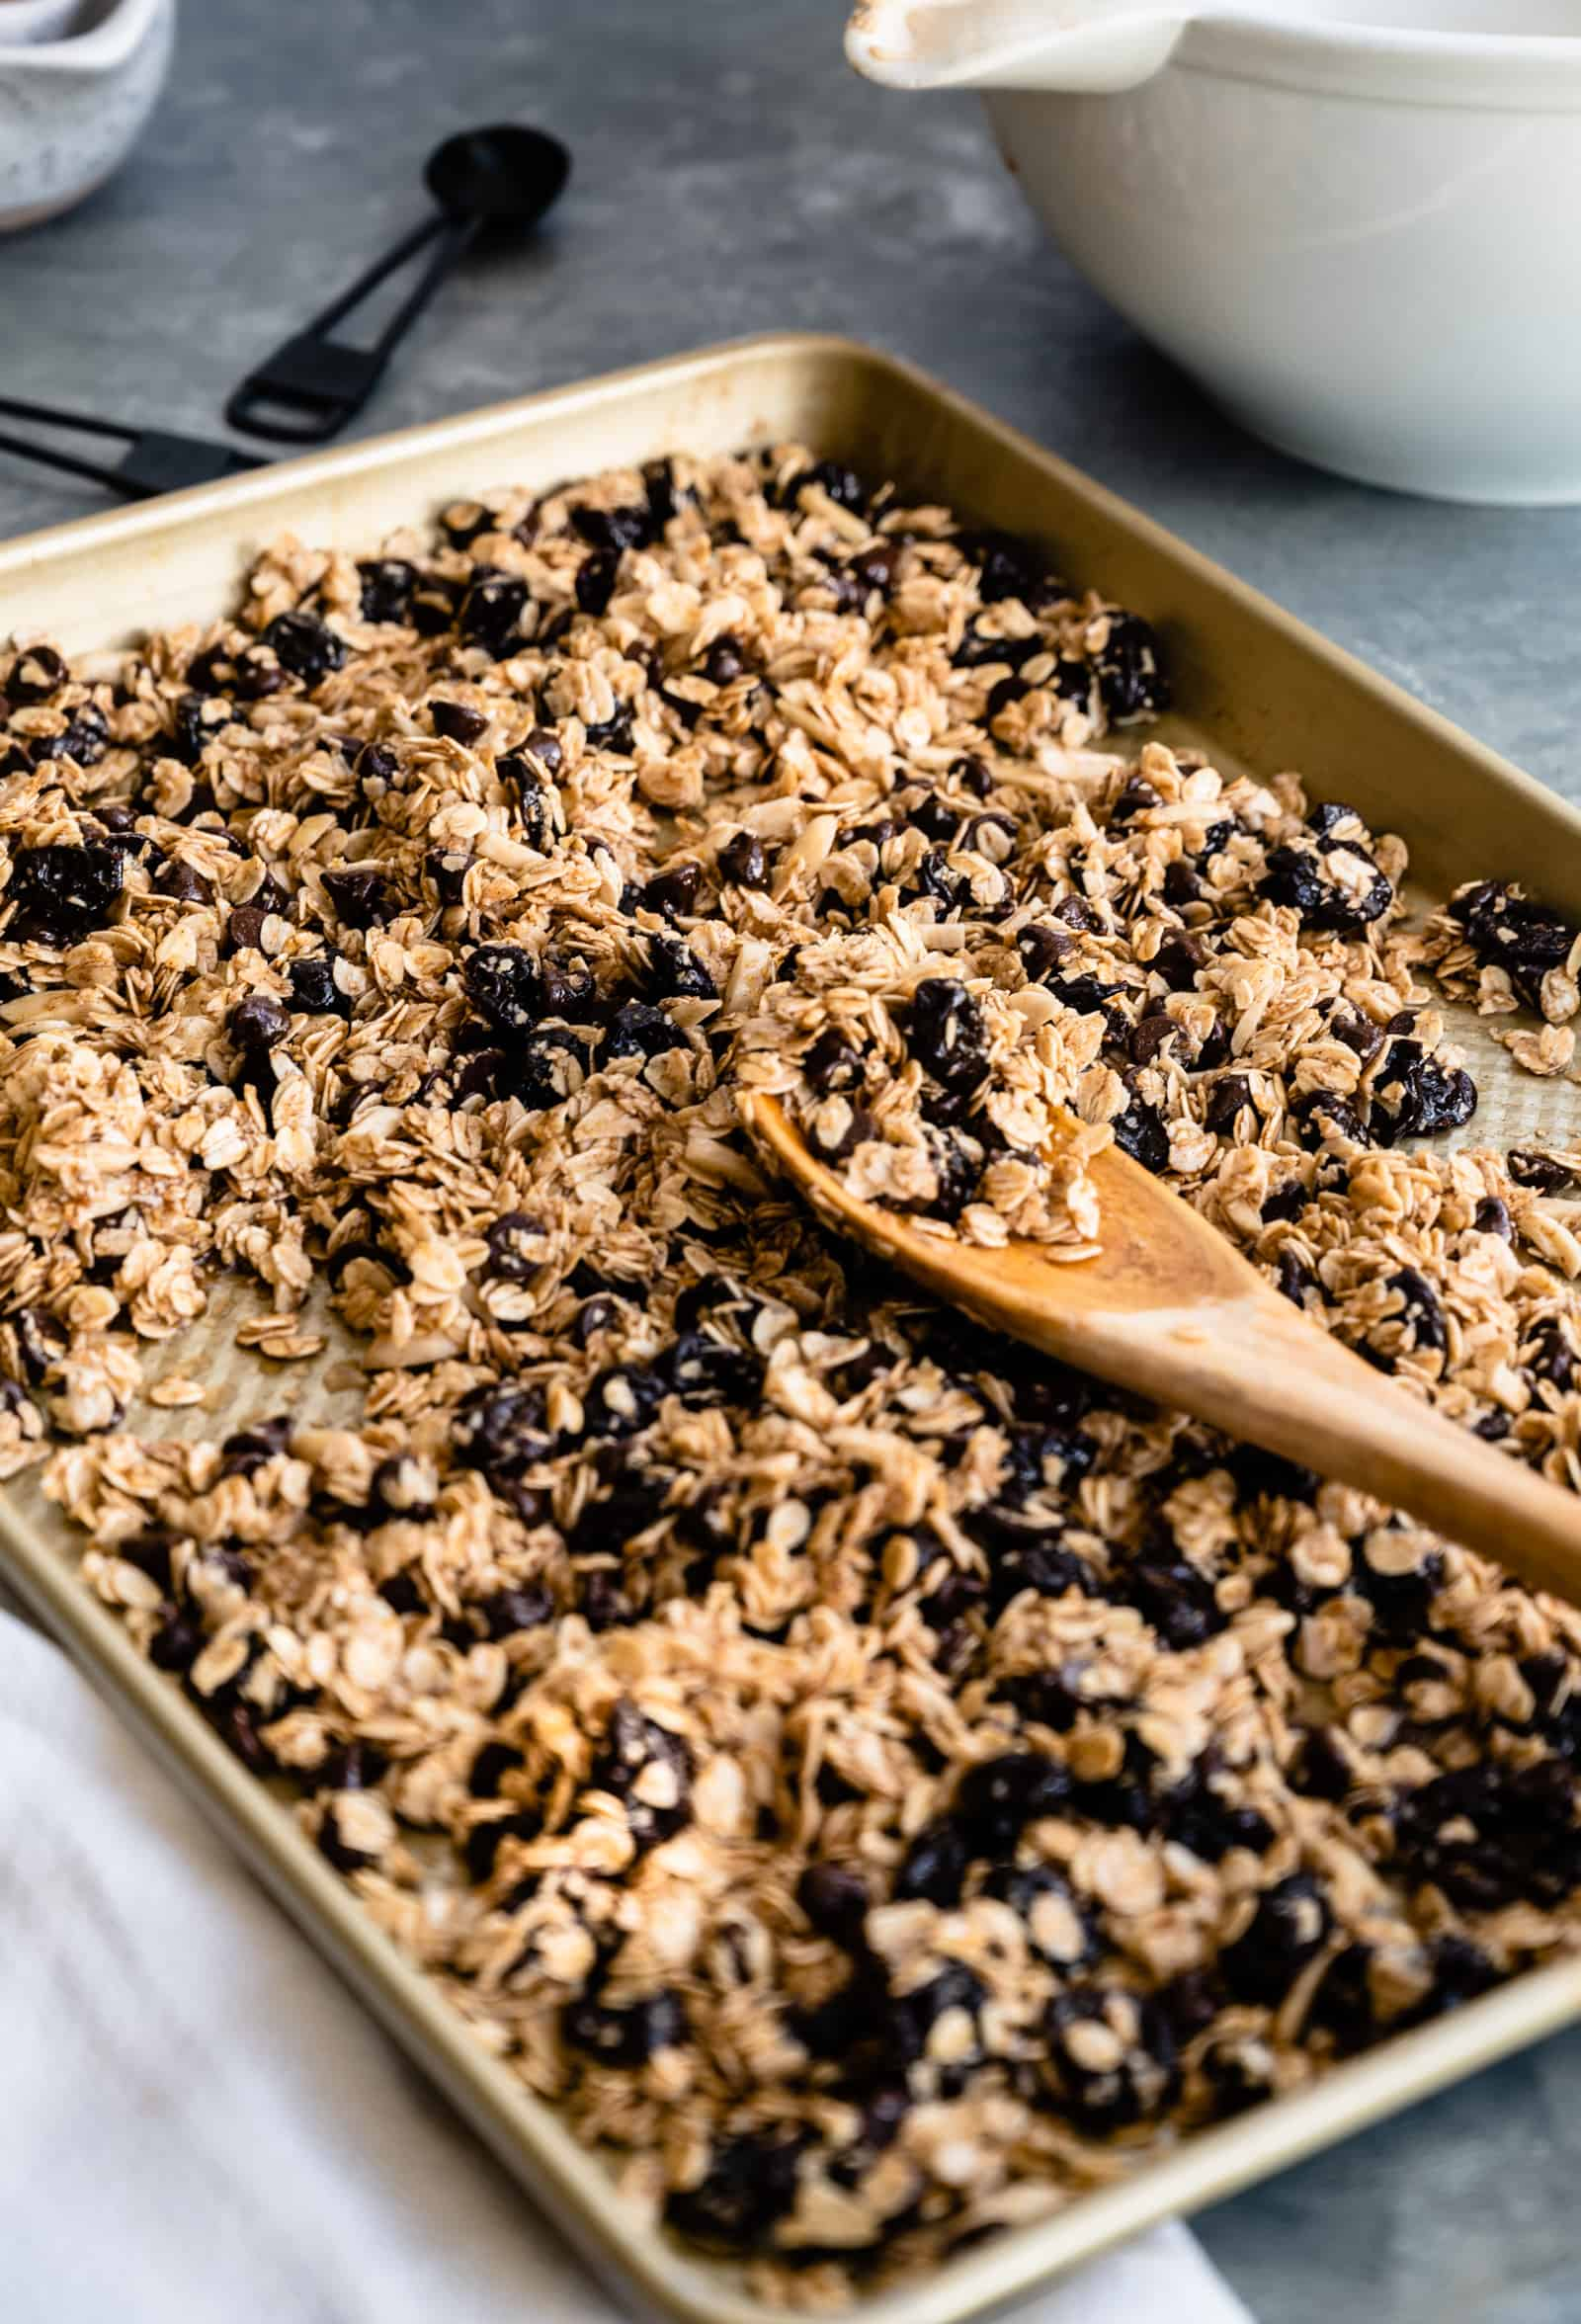 sheet pan of granola with a wooden spoon